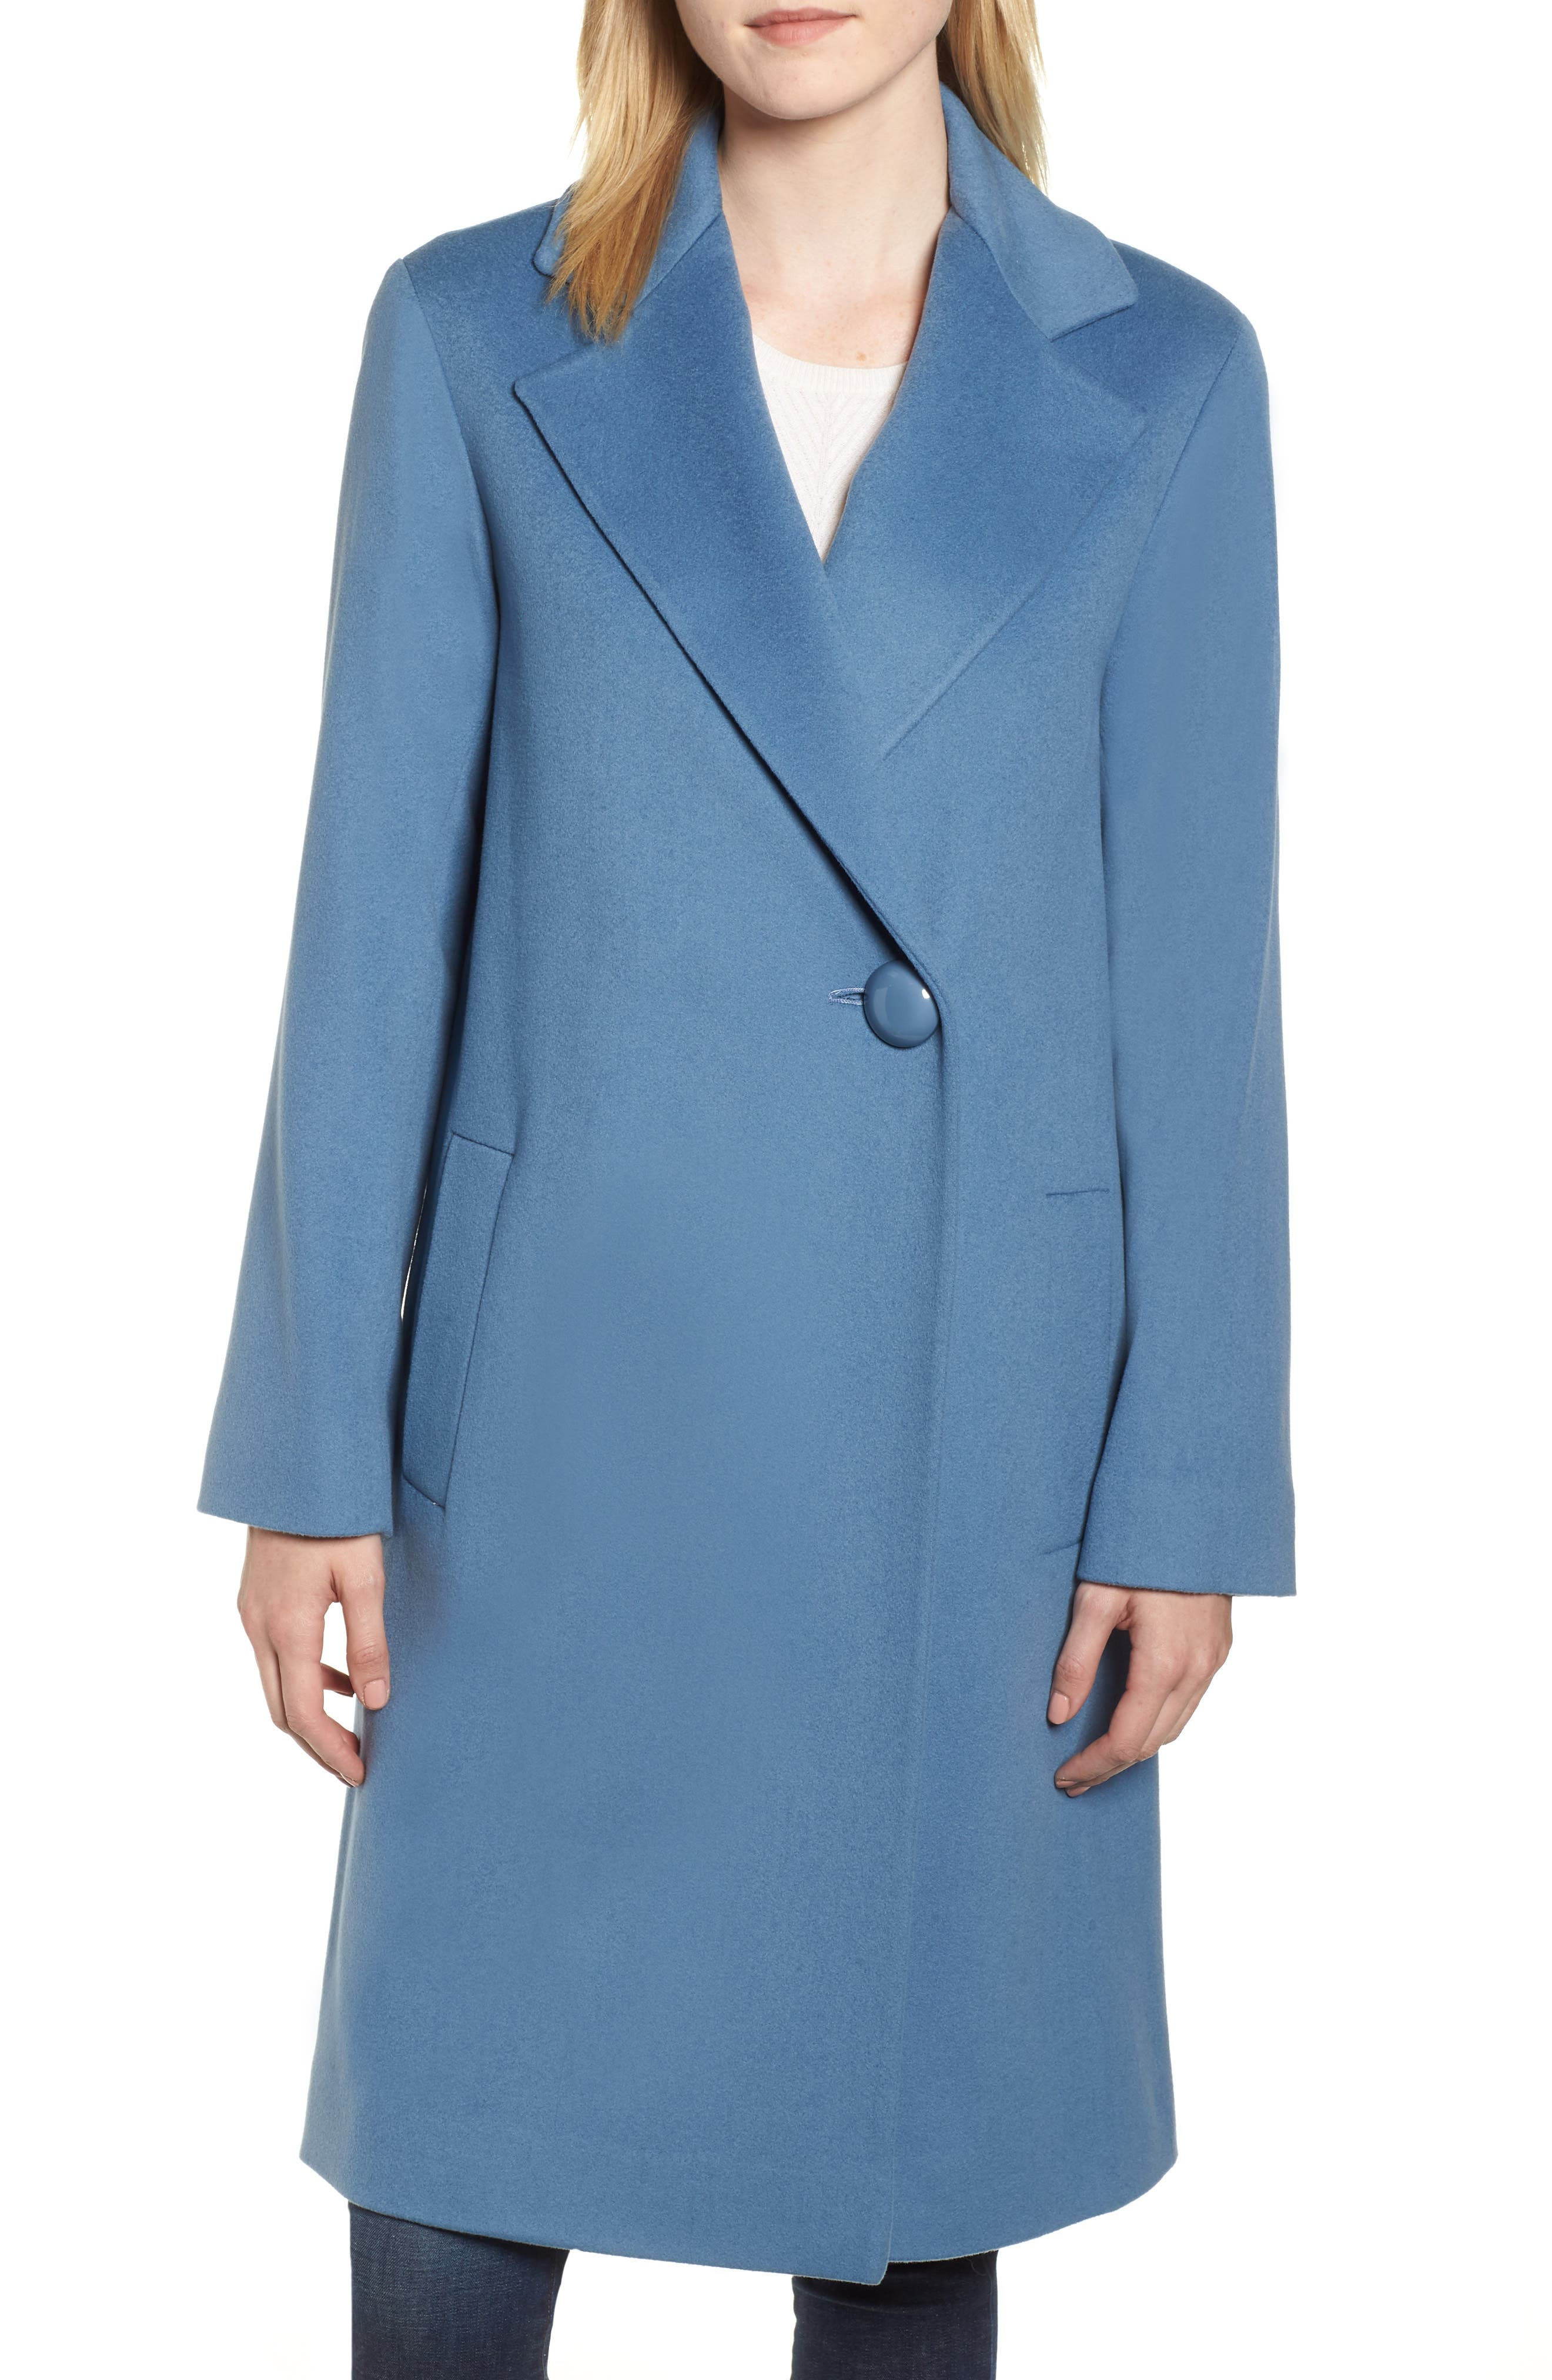 FLEURETTE One-Button Loro Piana Wool Coat, Main, color, CORNFLOWER